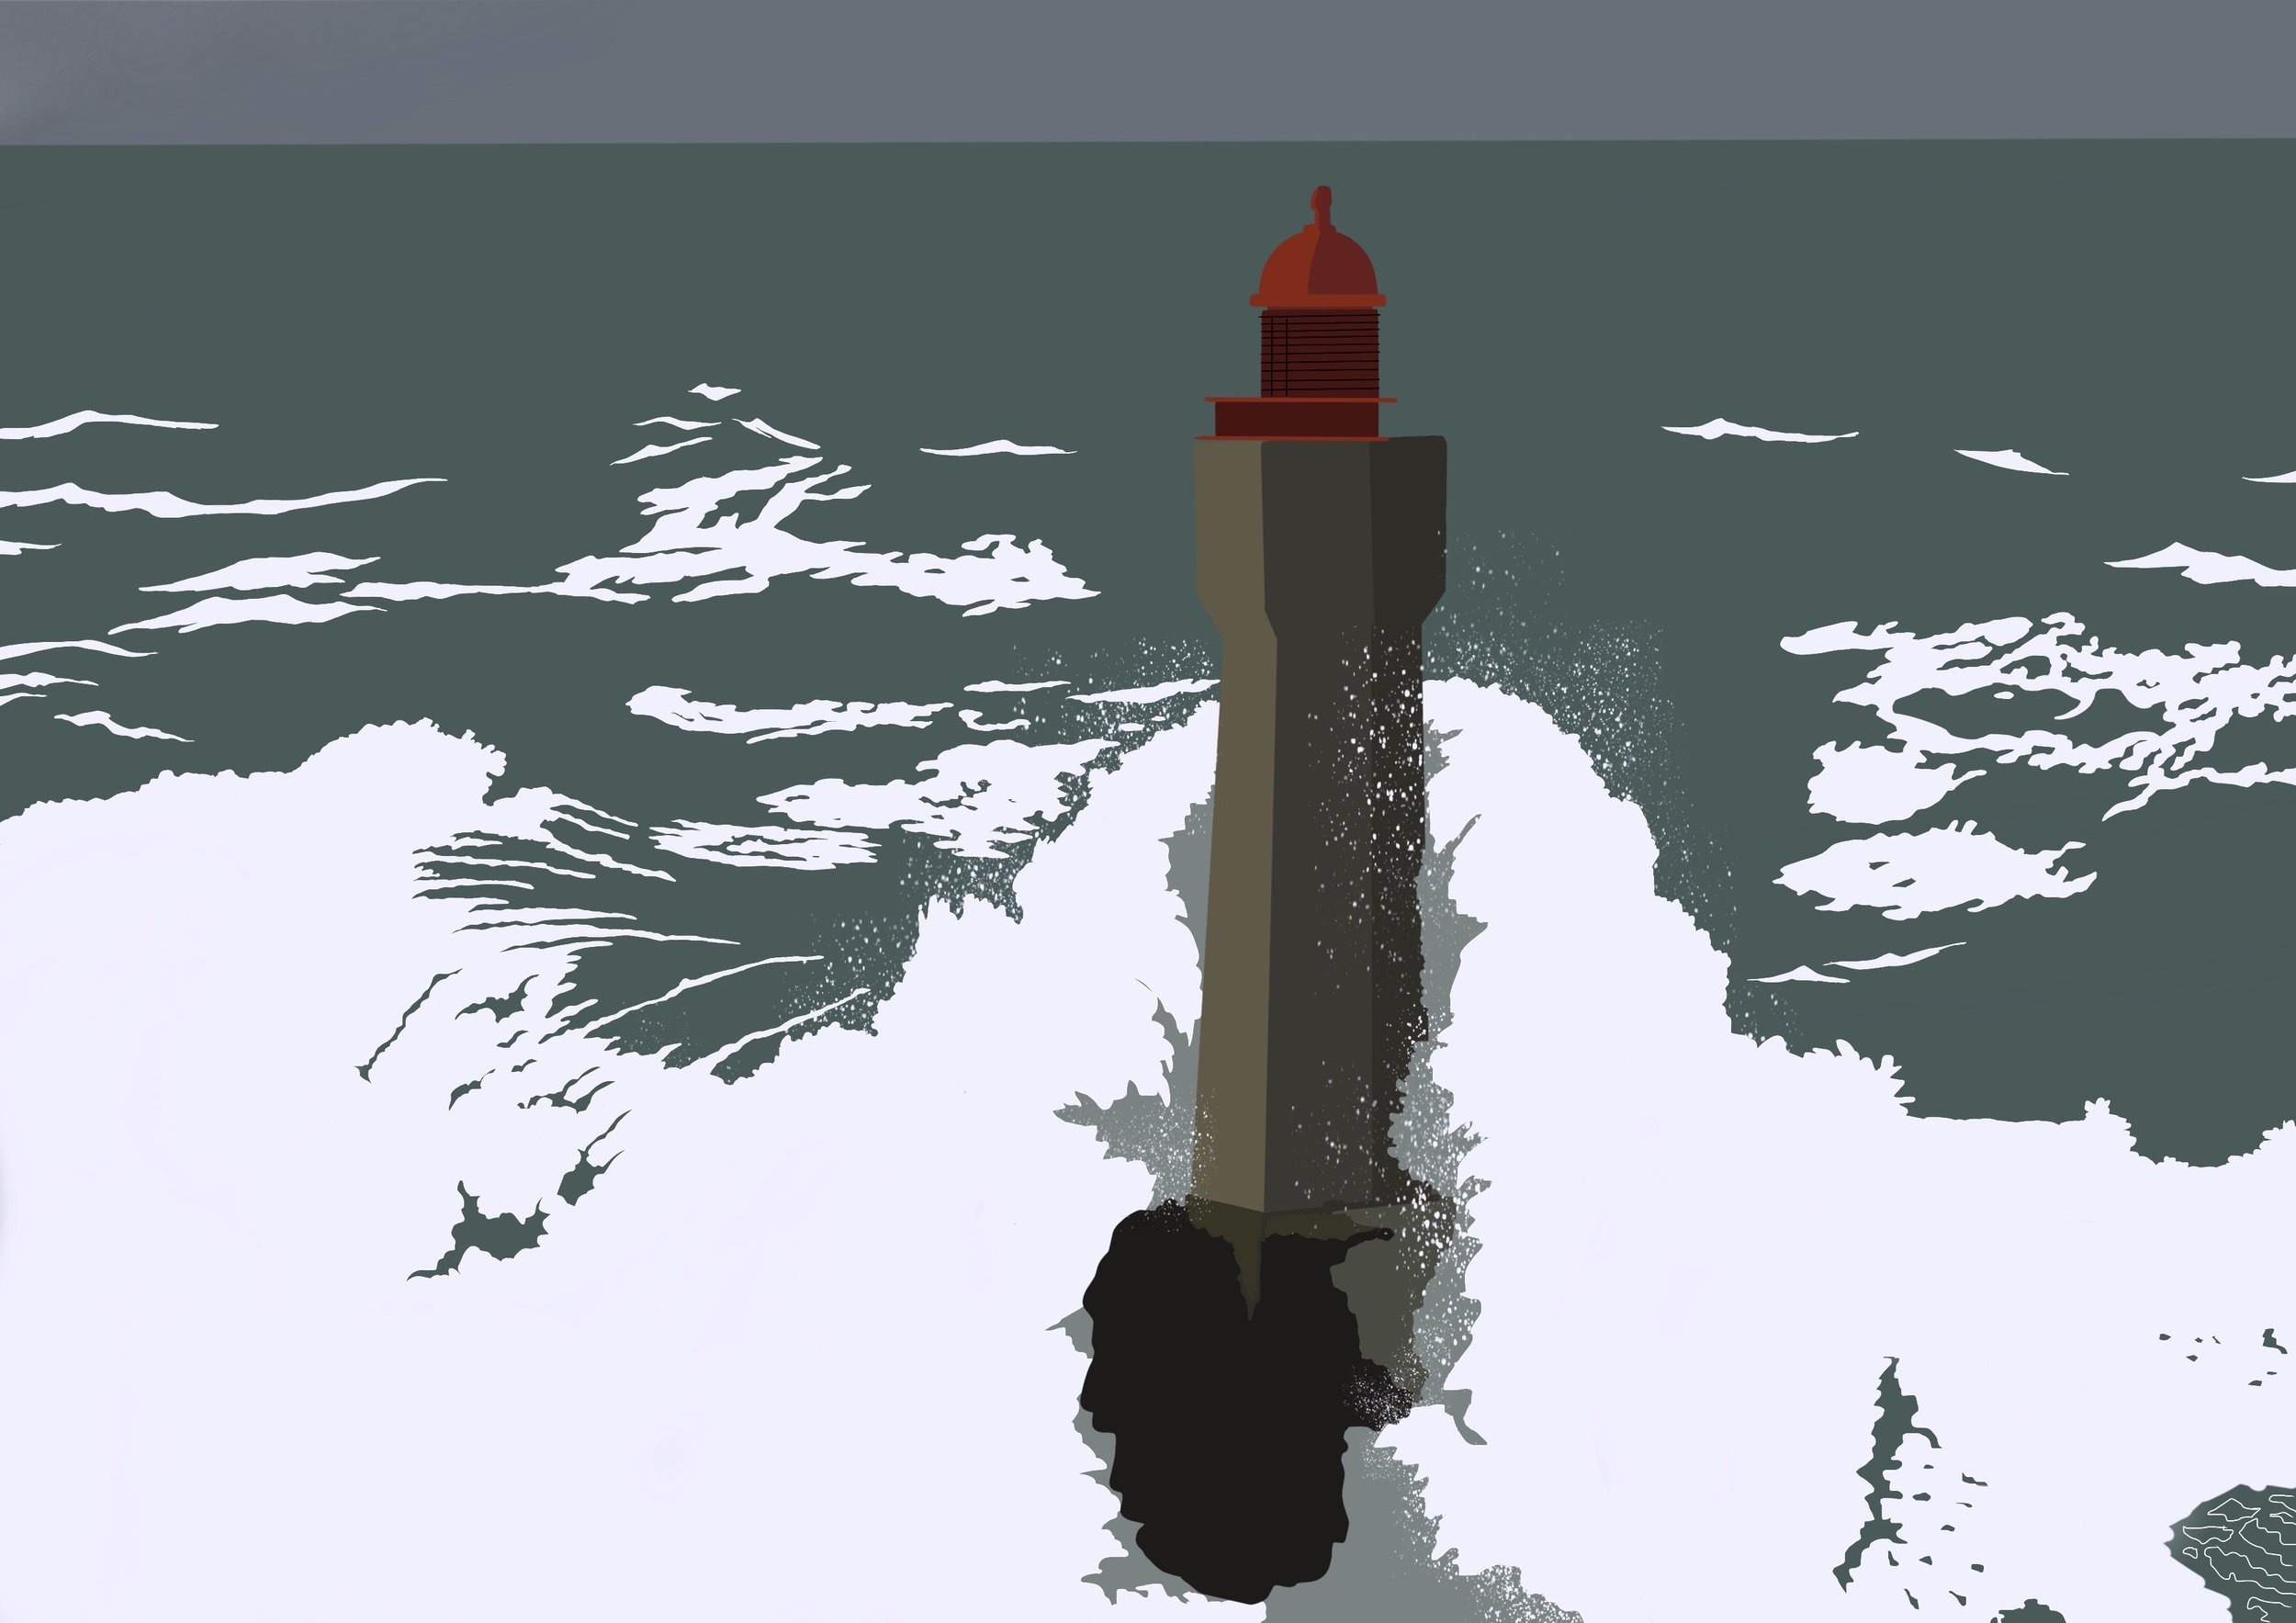 Lighthouse thinking - seeing resilience as standing tall and strong in the face of adversity